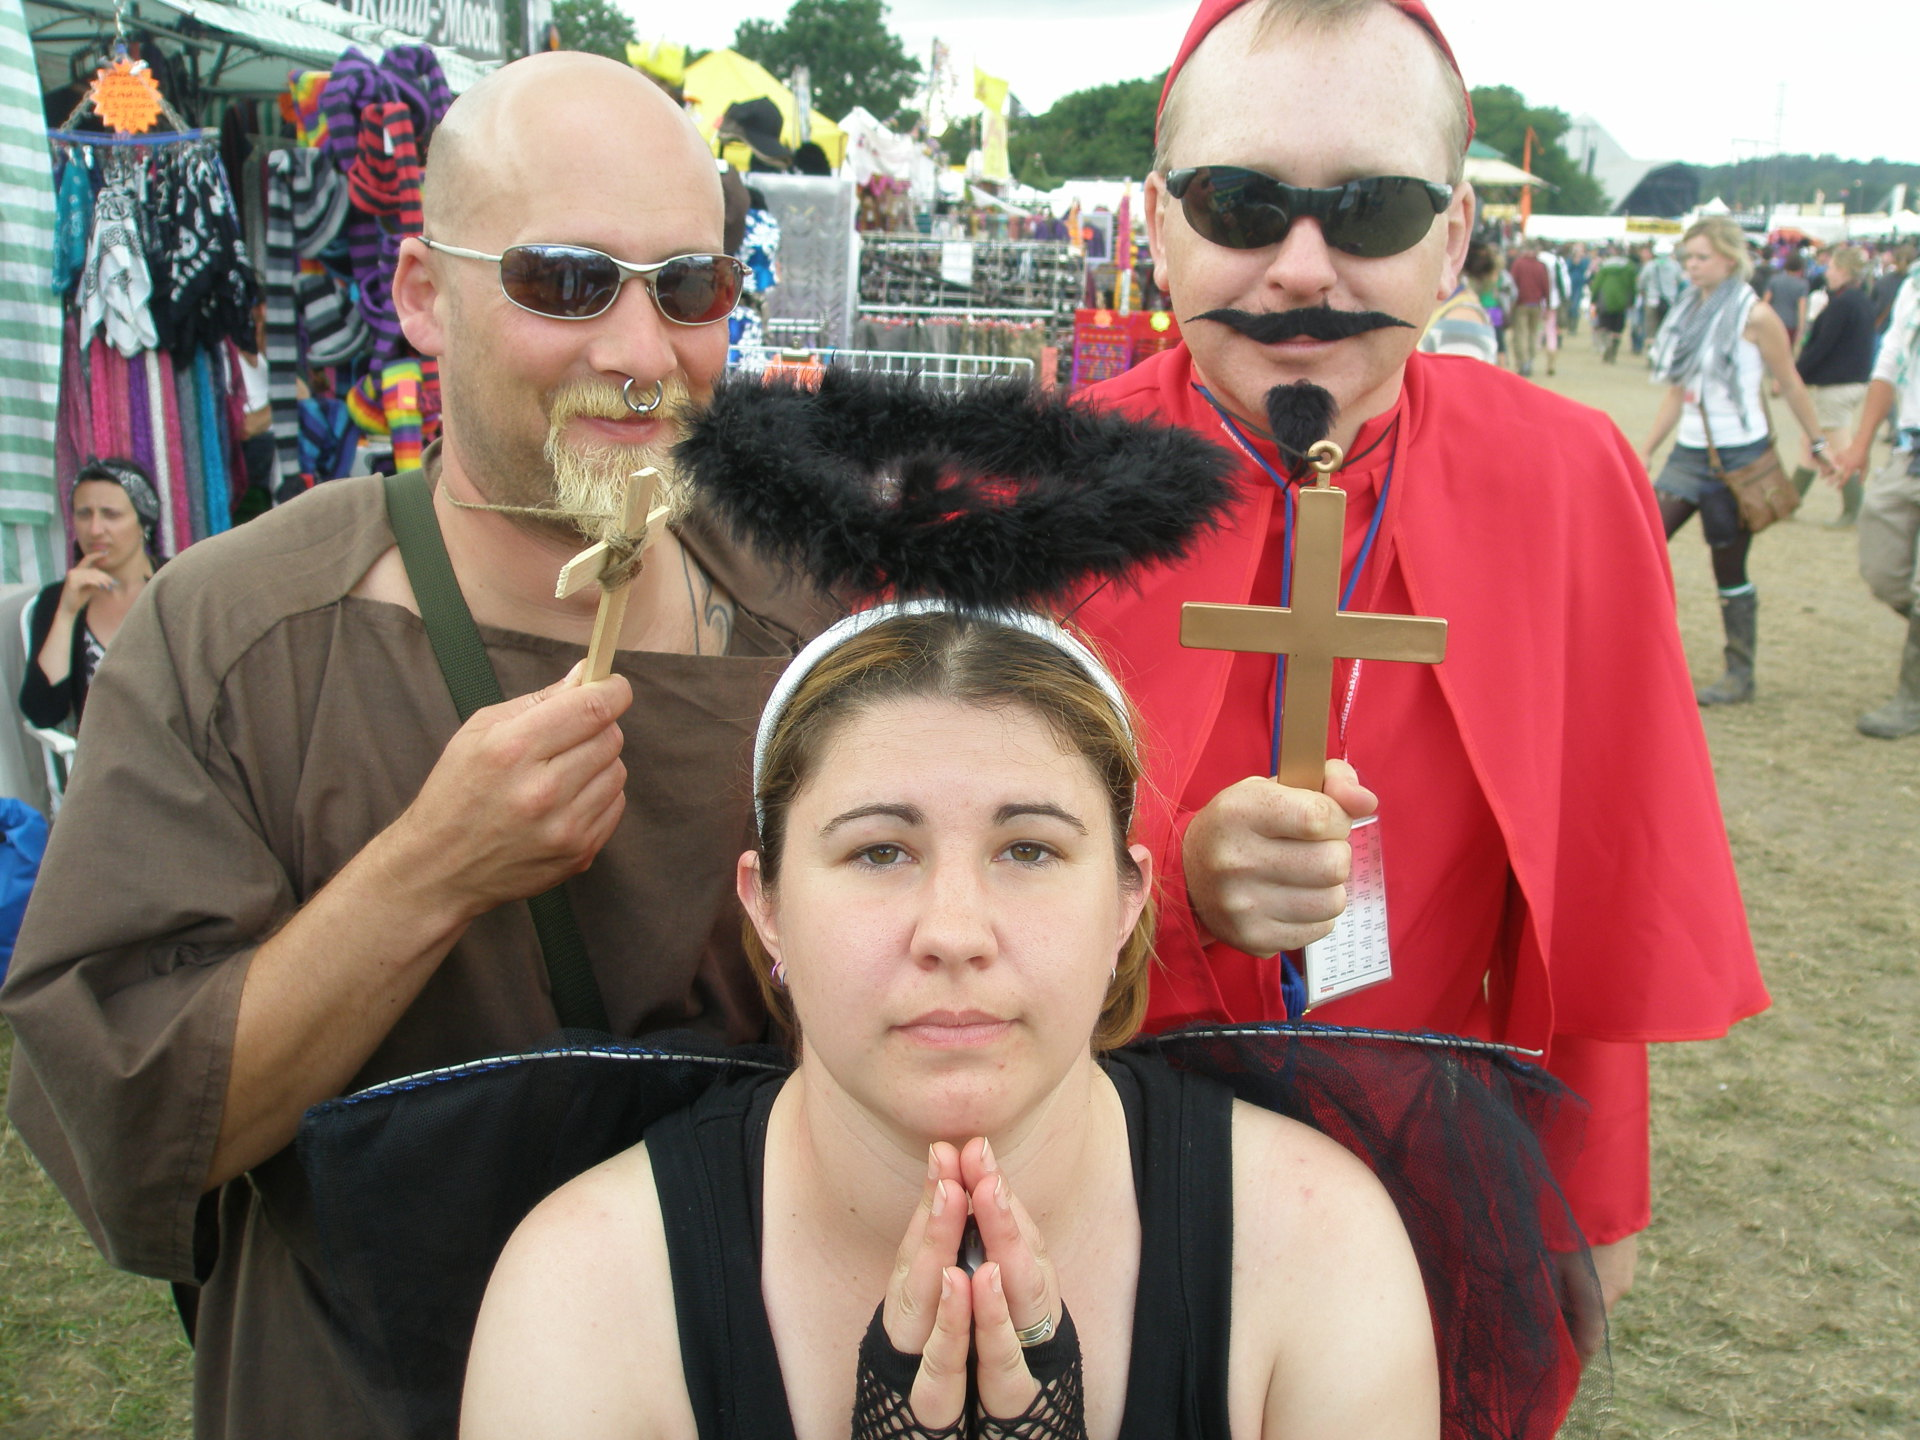 Glastonbury & Religion